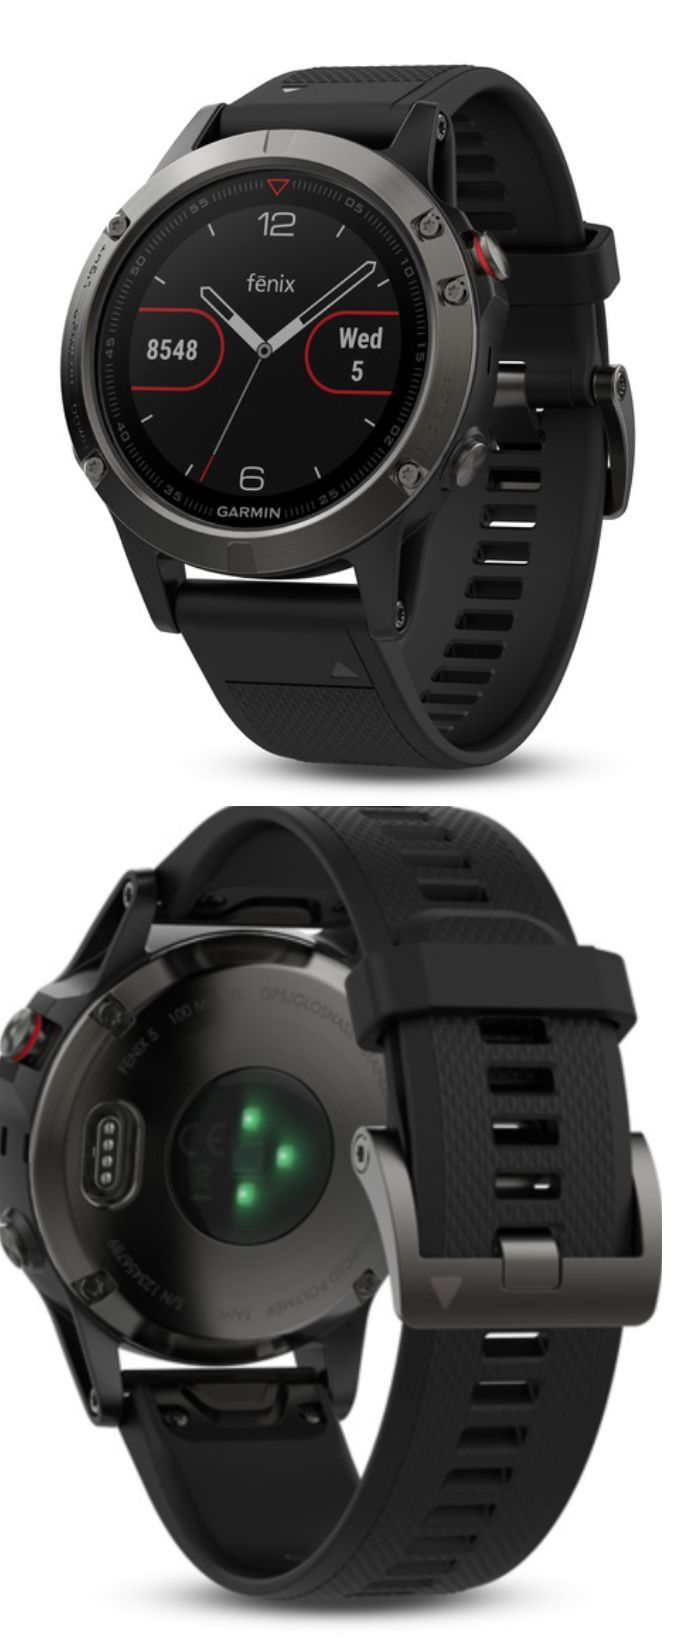 GPS and Running Watches 75230: New Garmin Fenix 5 Multisport Gps Watch - Black Band - 010-01688-00 - In Stock -> BUY IT NOW ONLY: $609.99 on eBay! #runninggpswatch